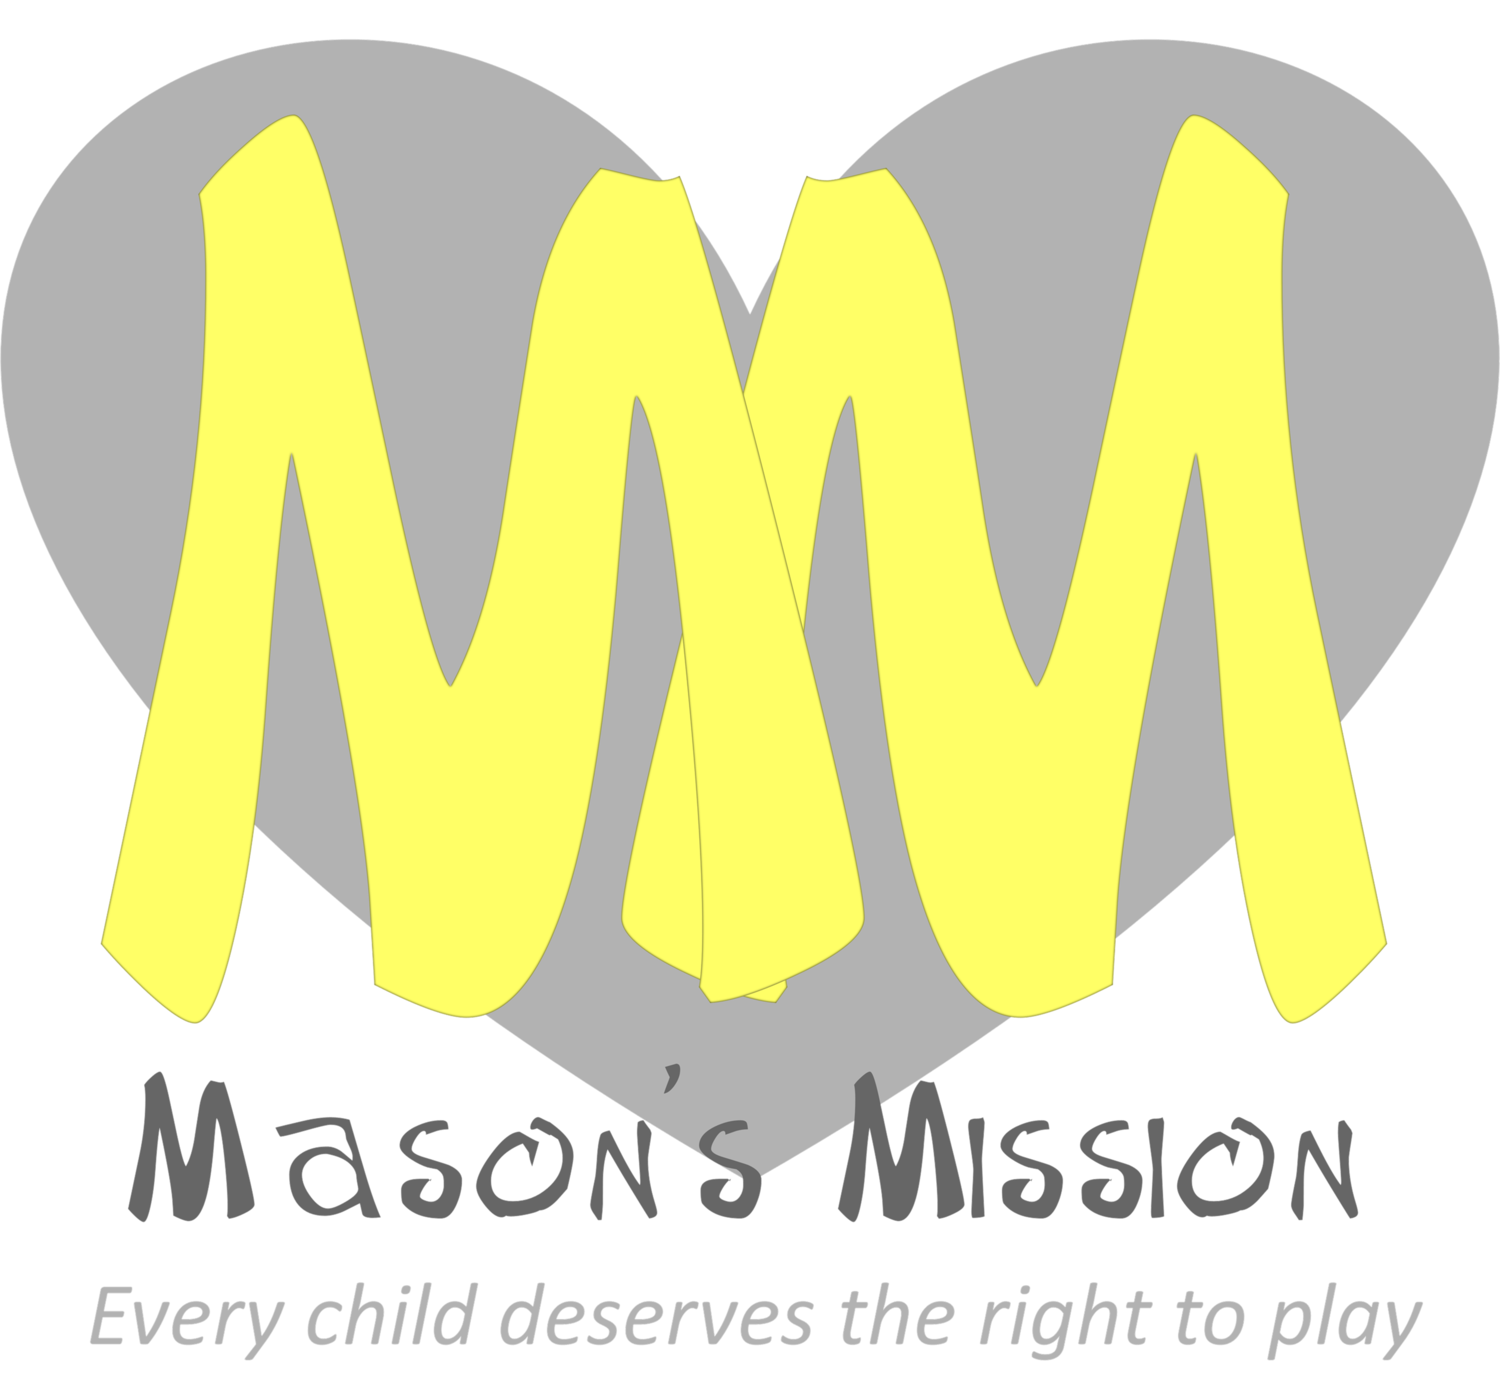 Mason's Mission Foundation